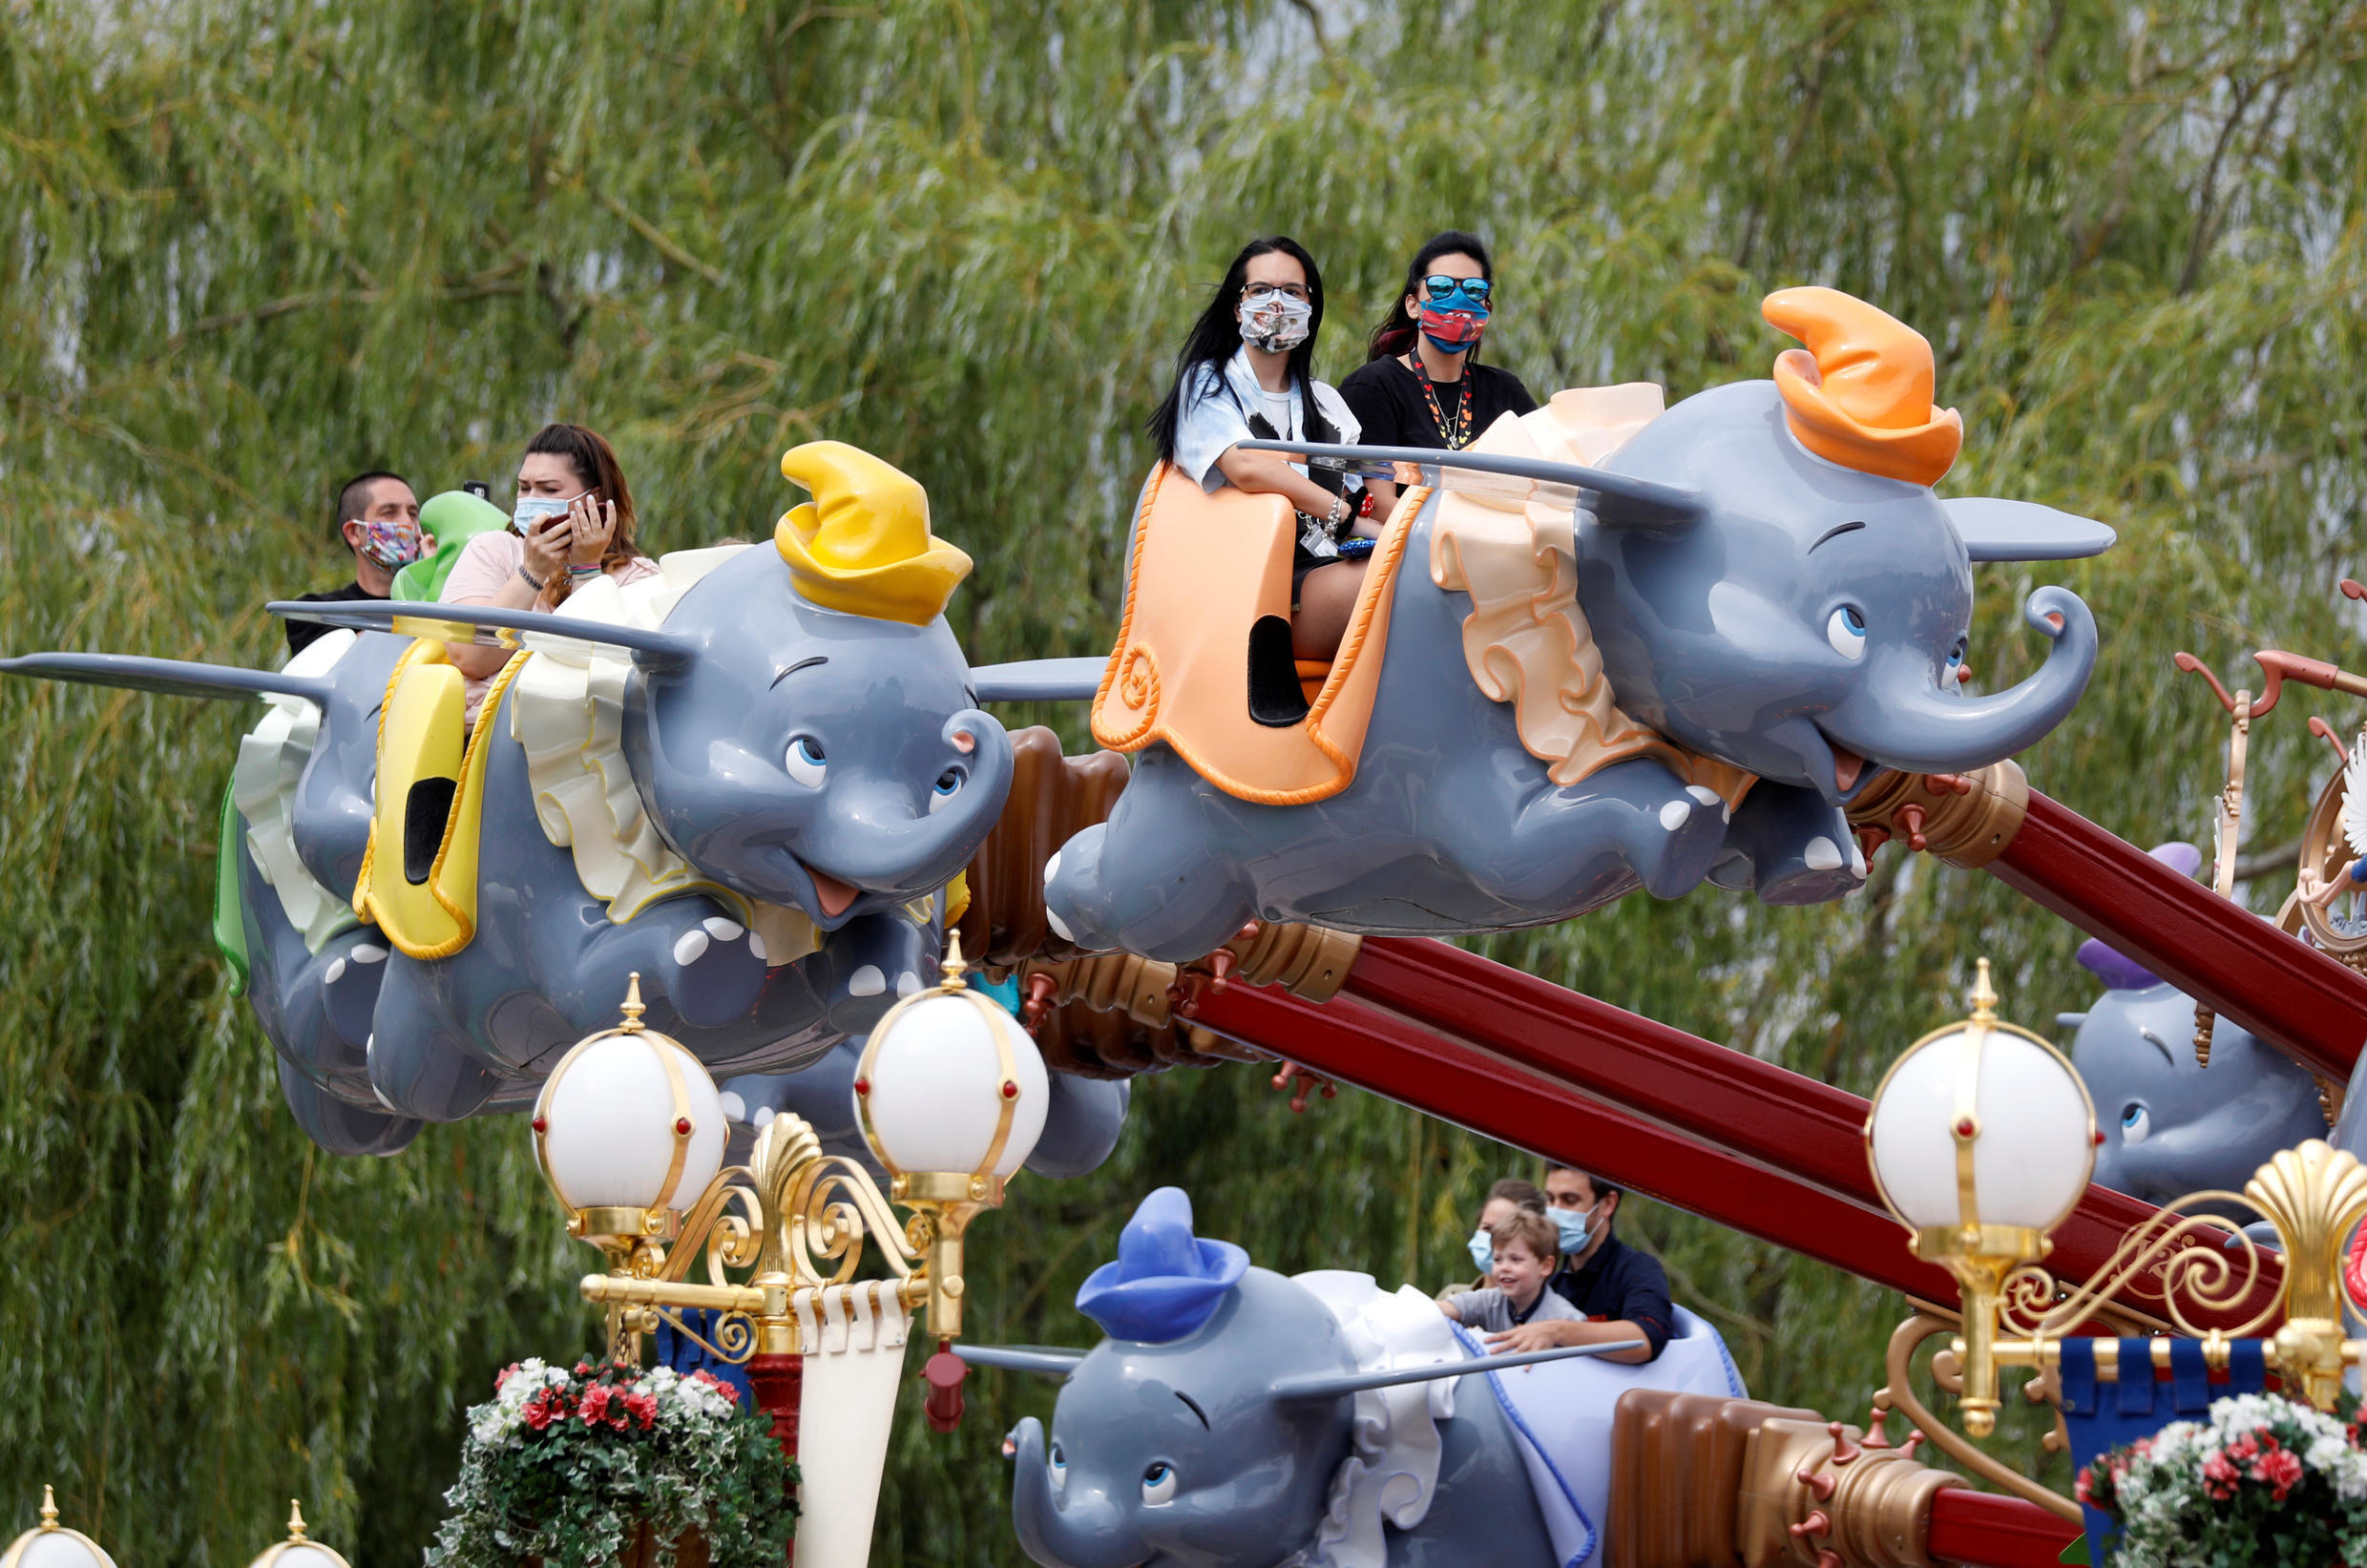 Disneyland Paris visitors enjoy the Dumbo carrousel, one of the rides for which it is possible to ensure physicial distancing.